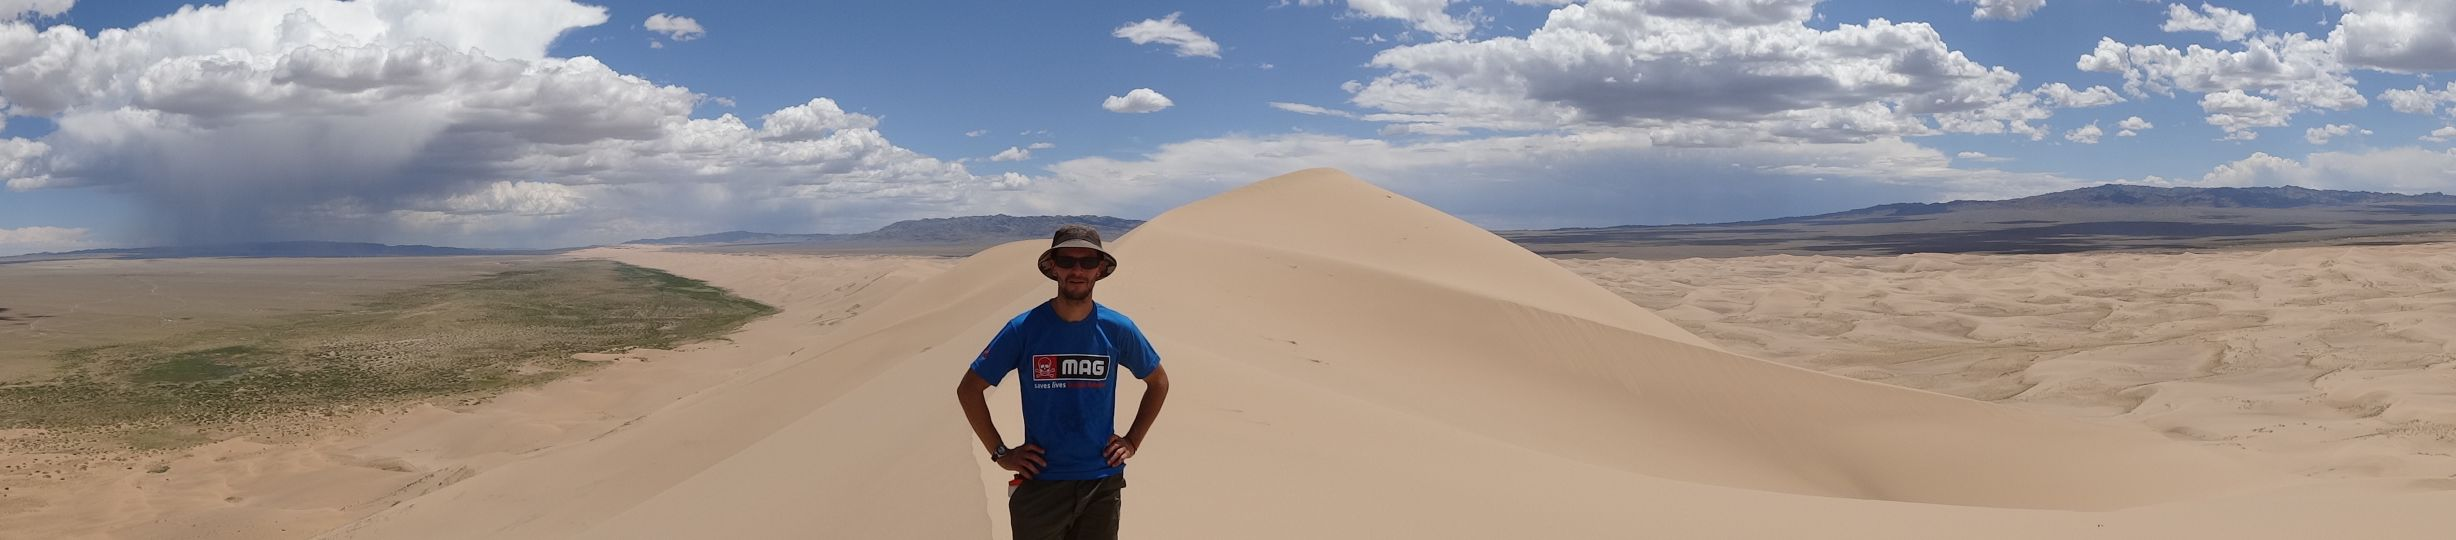 Jon on top of the tallest sand dunes in the Gobi Desert